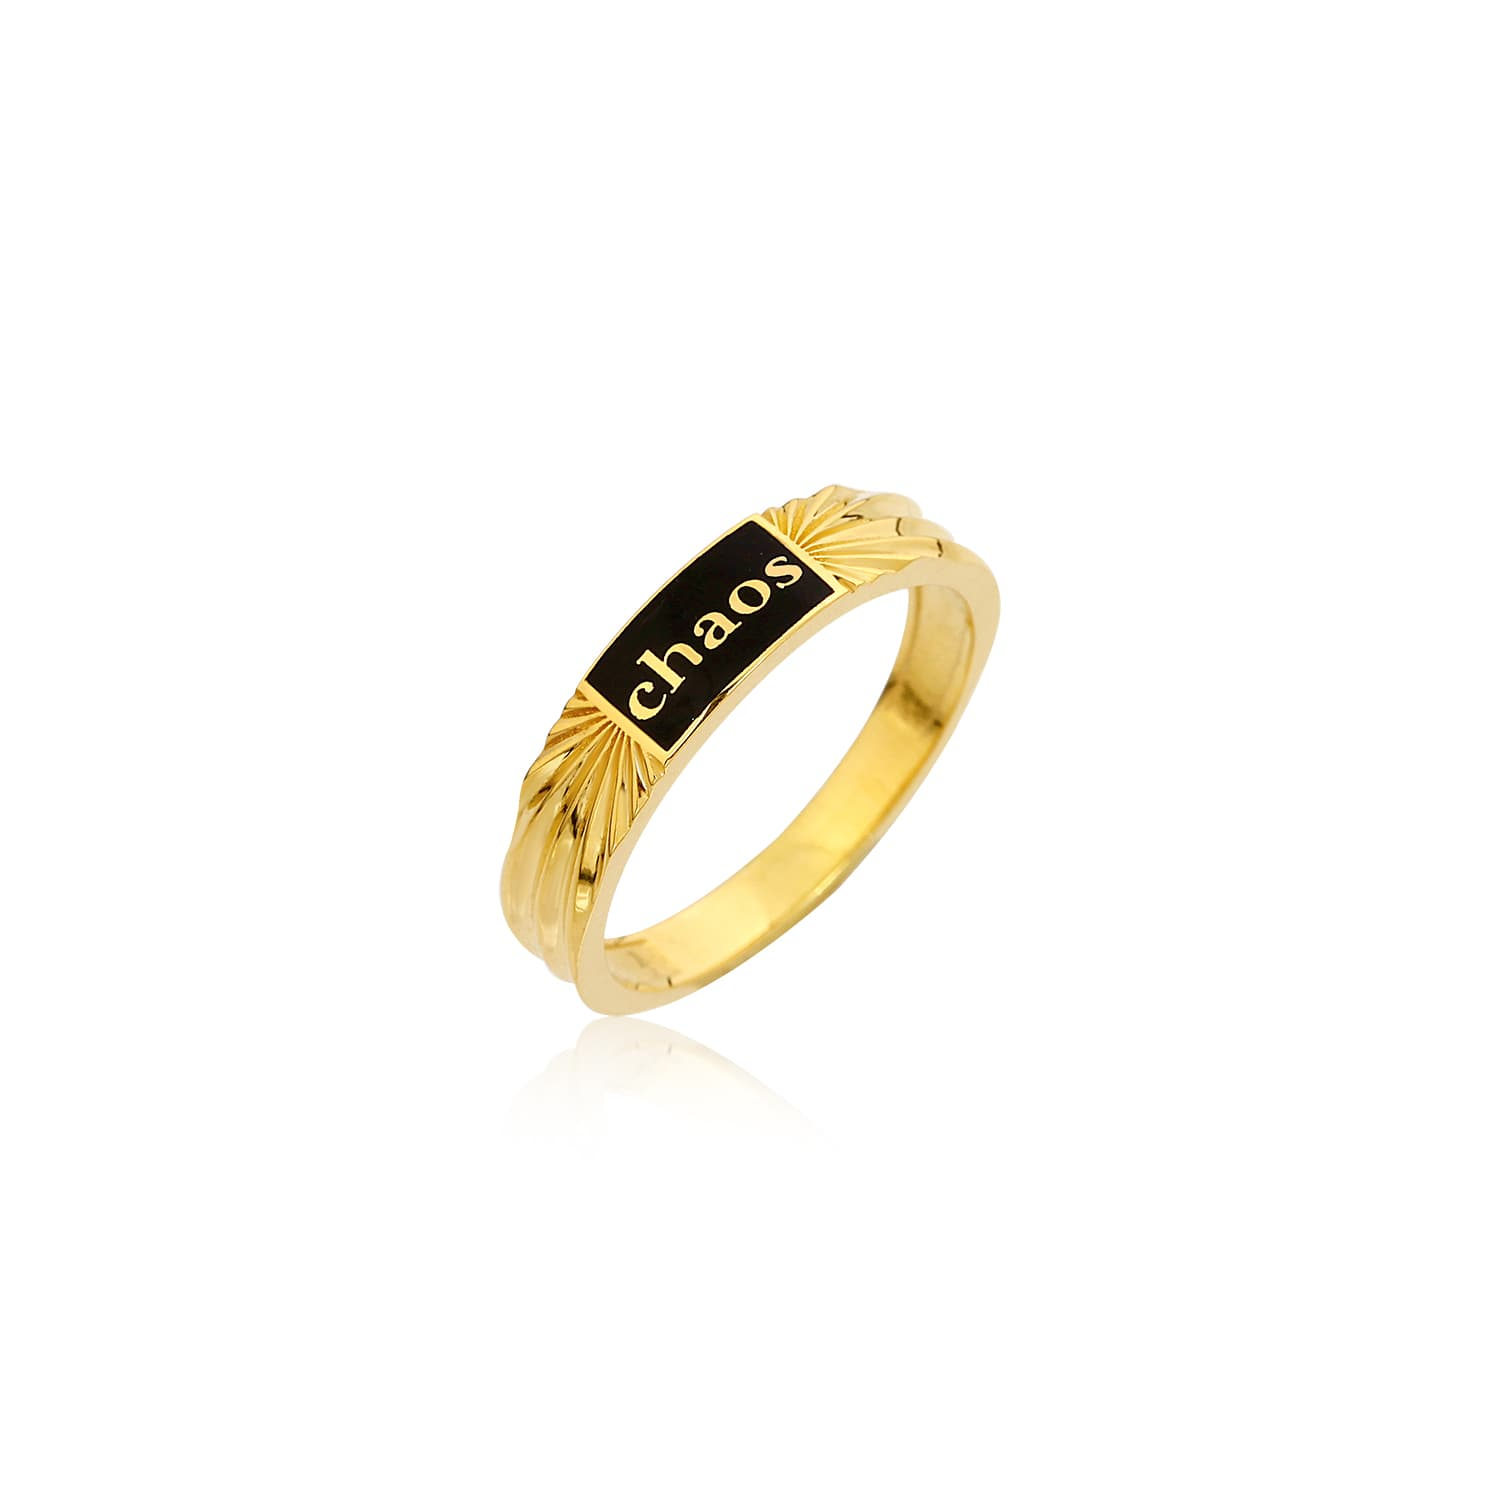 Black enamel ring with gold plated chaos writing on silver